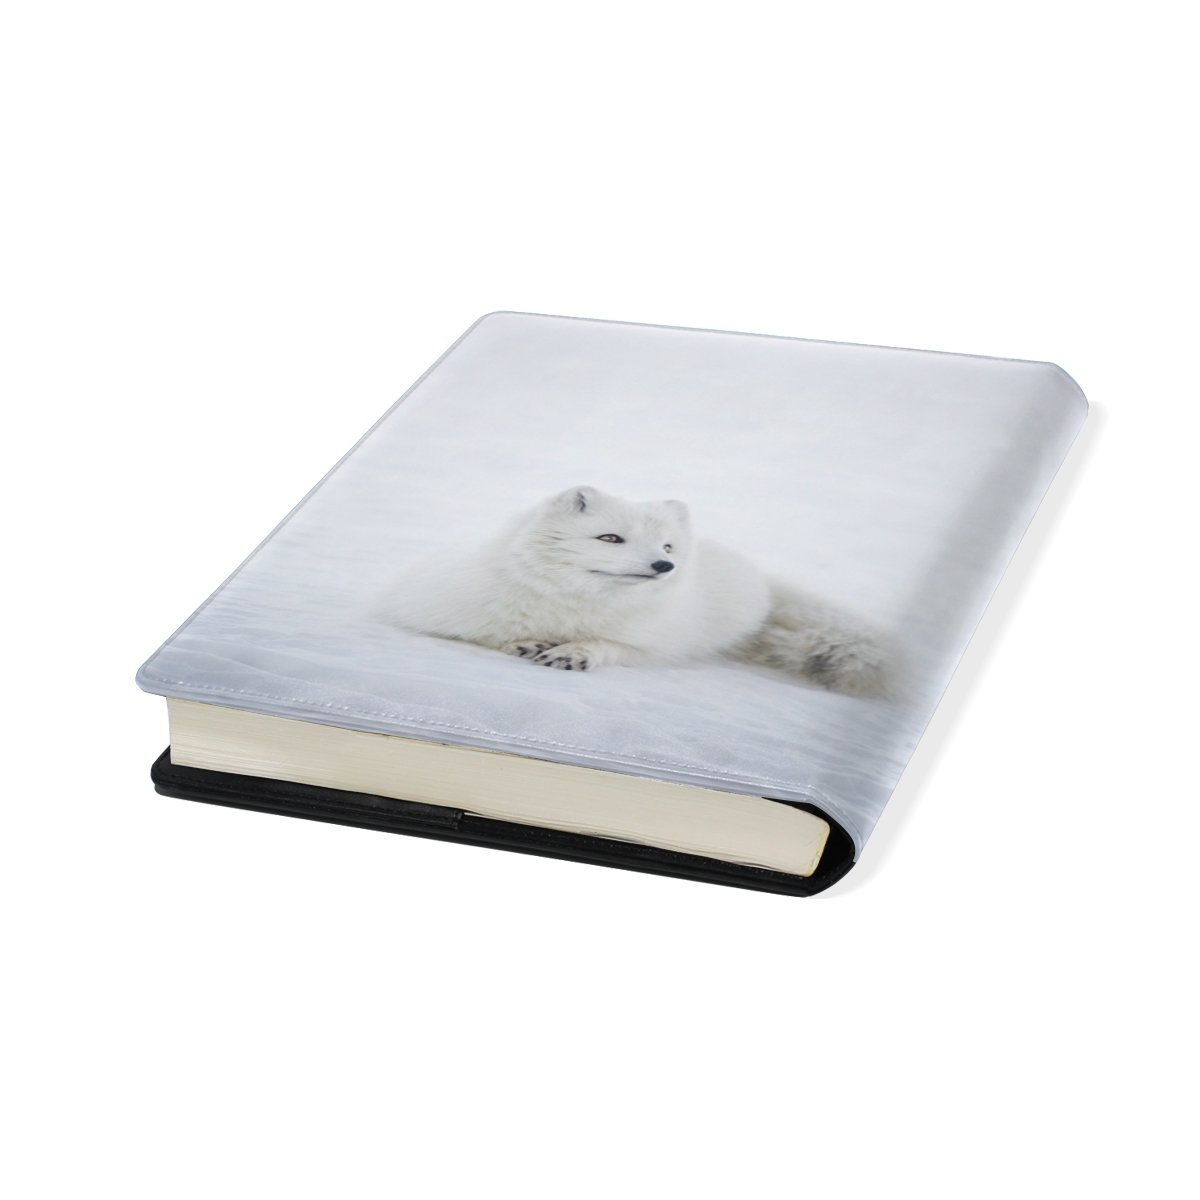 White Fox Stretchable Leather Book Covers Standard Size for Student Hardcover Textbooks Fits up to 9x11-Inch for School Girls Boys Gift